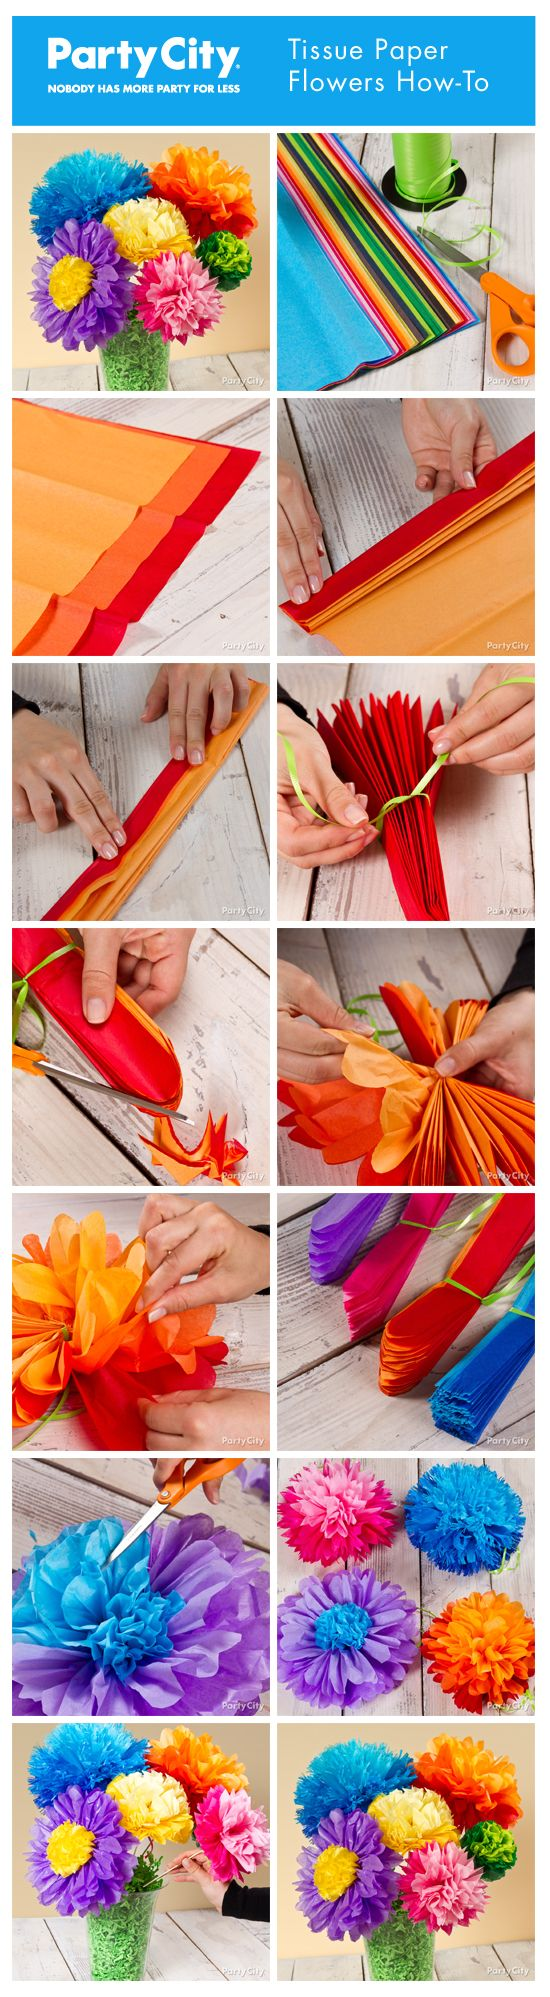 15 Best Images About Flowers On Pinterest Tissue Paper Flower